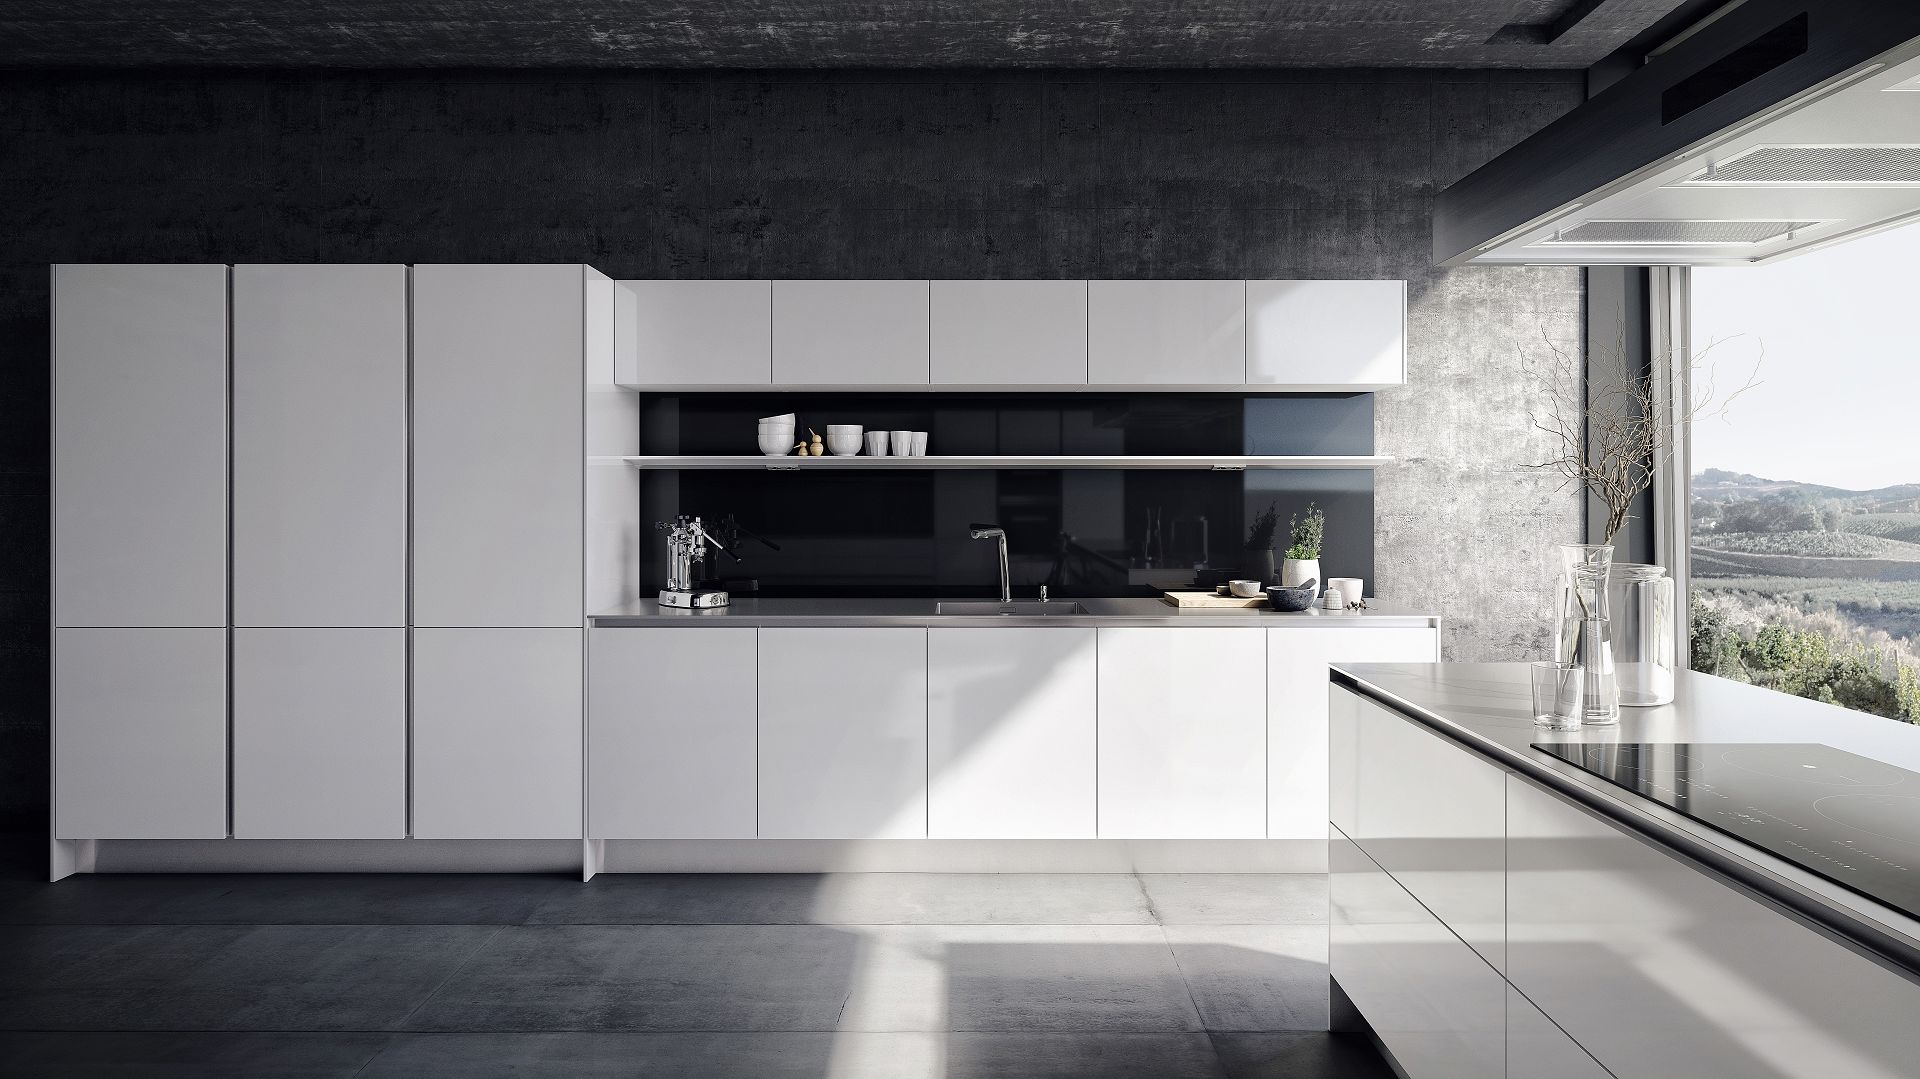 Individual solutions, perfect craftsmanship and unique kitchen design from SieMatic